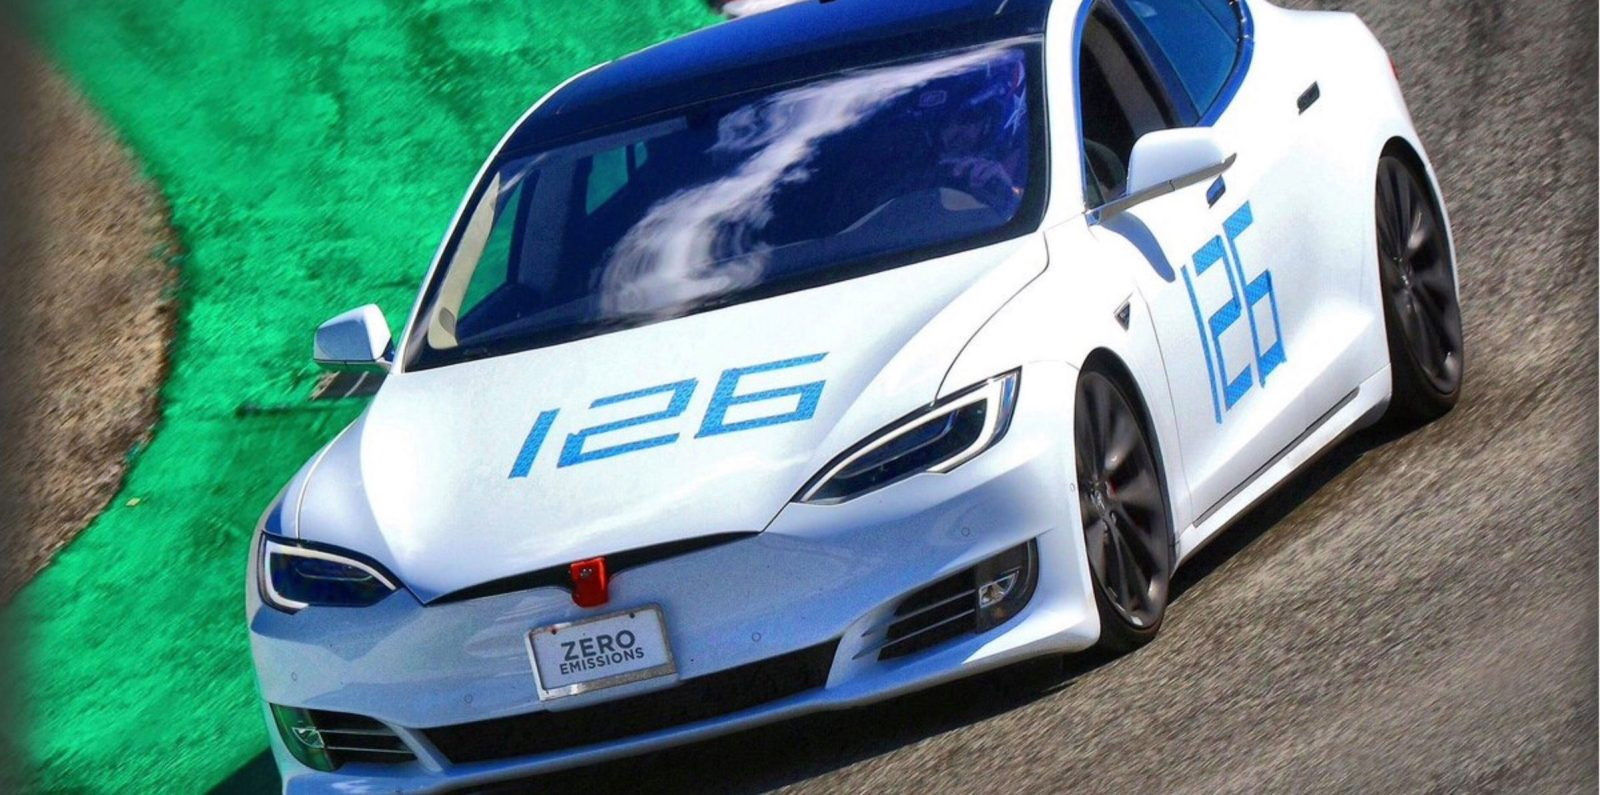 Tesla Model S breaks Laguna Seca lap records, says Elon Musk